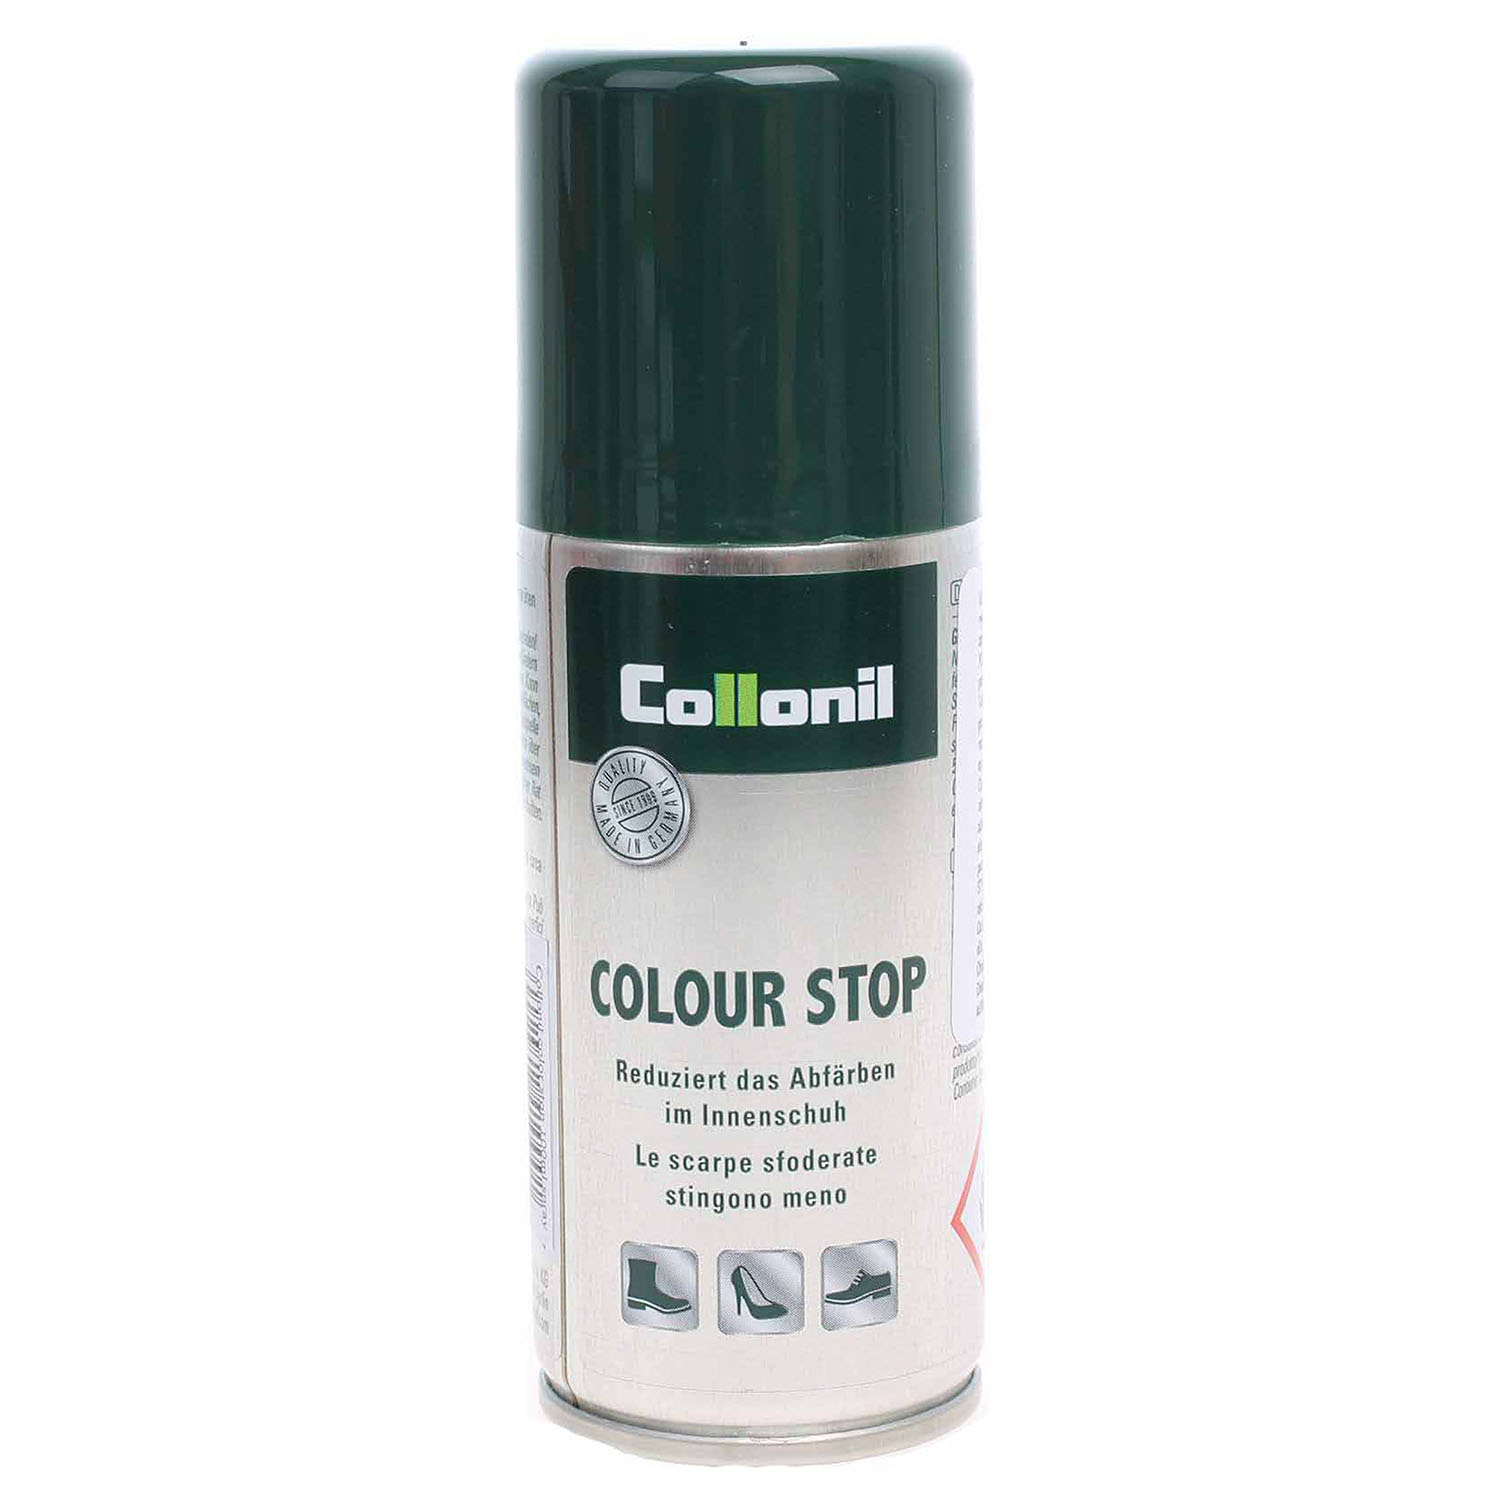 Collonil Colour Stop